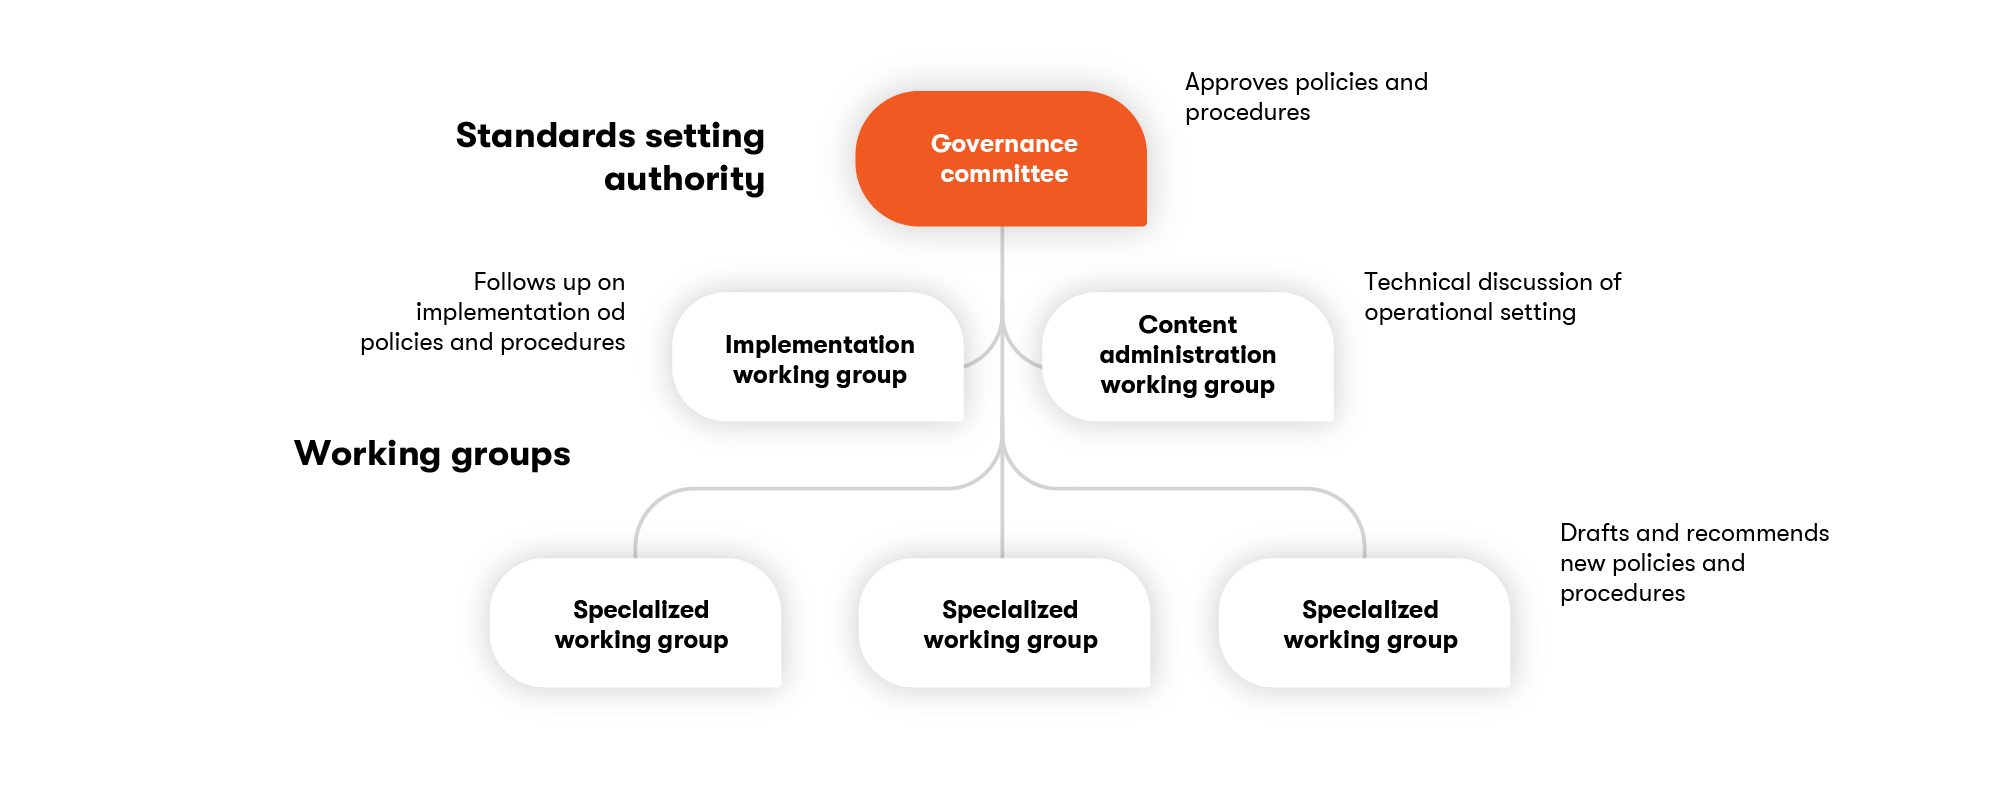 A governance committee is supported by specialized working groups.